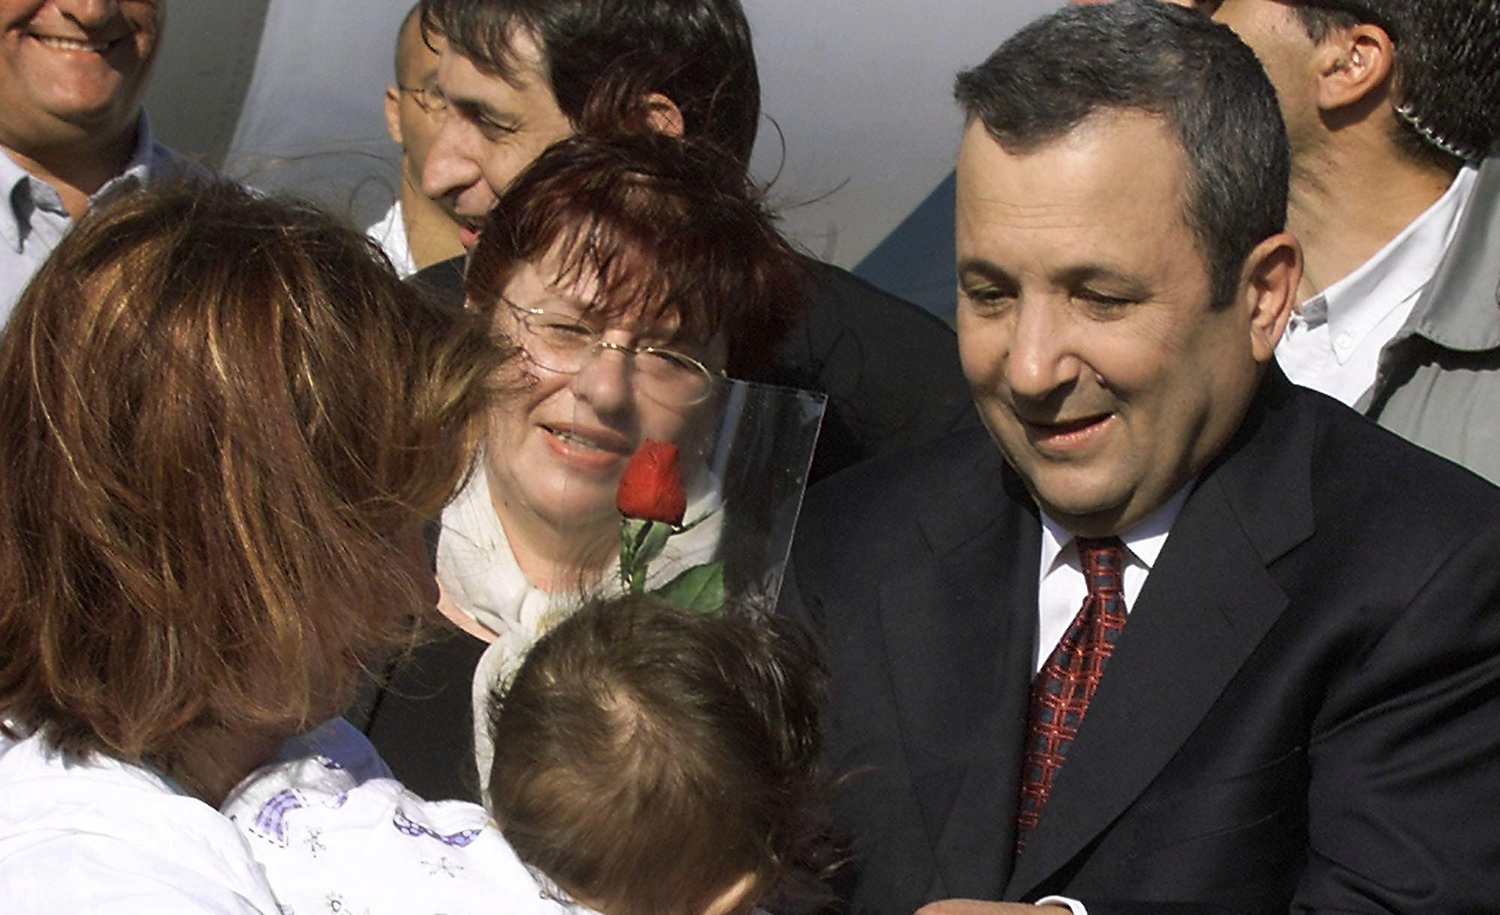 Israeli Prime Minister Ehud Barak greets immigrants arriving by plane from Moscow on May 7, 2000 in Tel Aviv. SVEN NACKSTRAND/AFP via Getty Images.